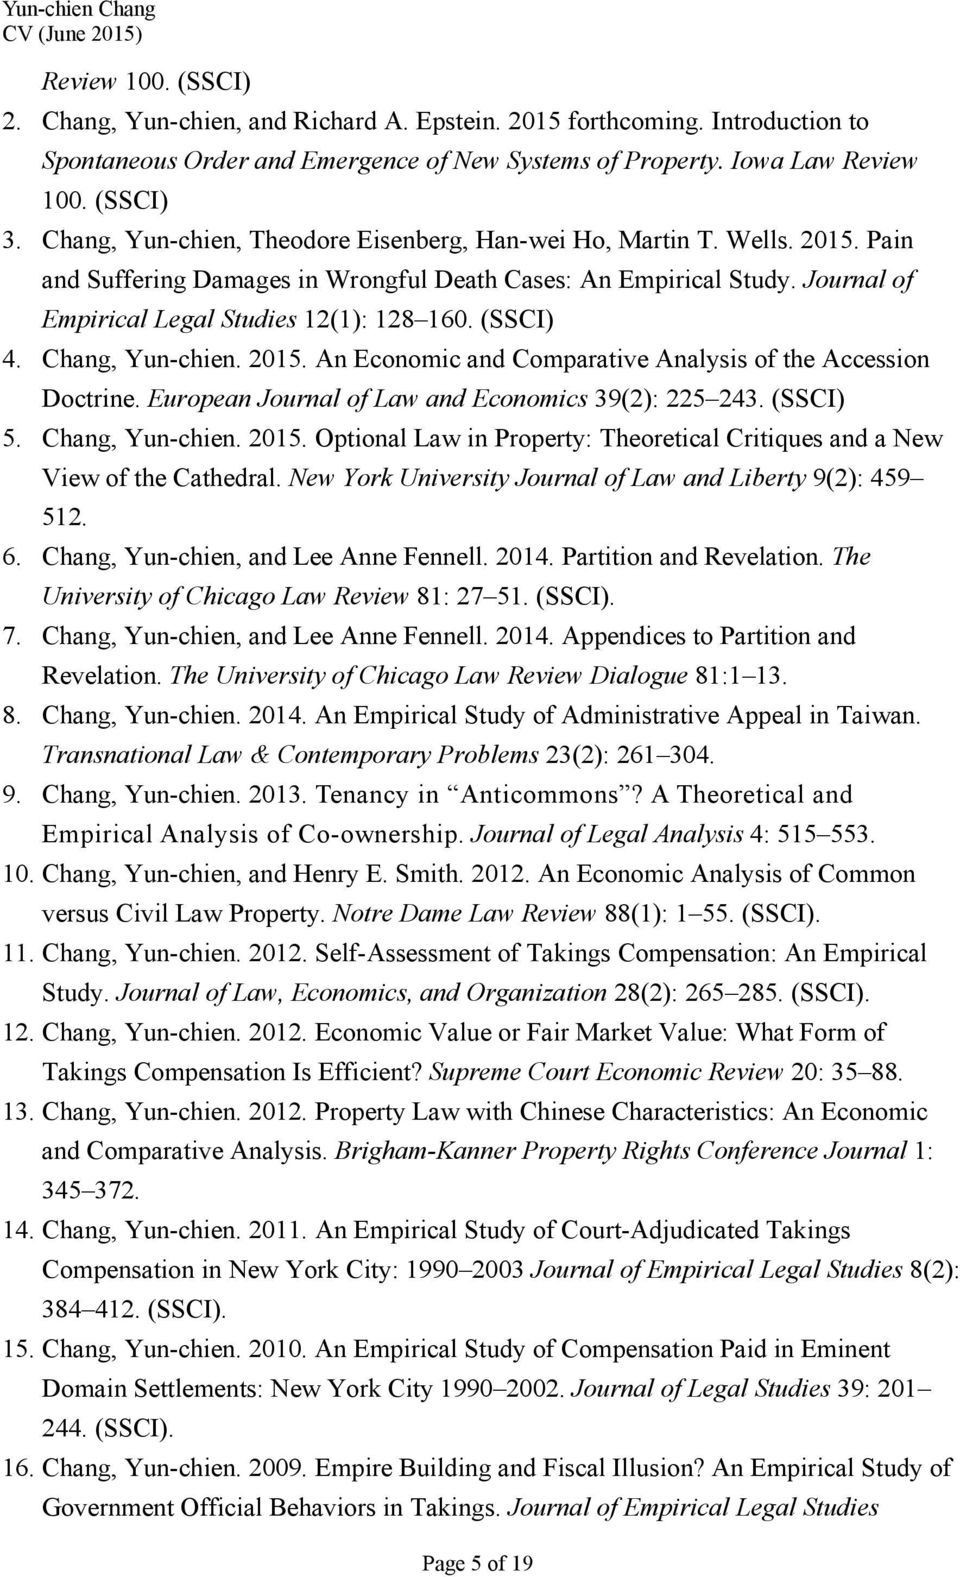 (SSCI) 4. Chang, Yun-chien. 2015. An Economic and Comparative Analysis of the Accession Doctrine. European Journal of Law and Economics 39(2): 225 243. (SSCI) 5. Chang, Yun-chien. 2015. Optional Law in Property: Theoretical Critiques and a New View of the Cathedral.